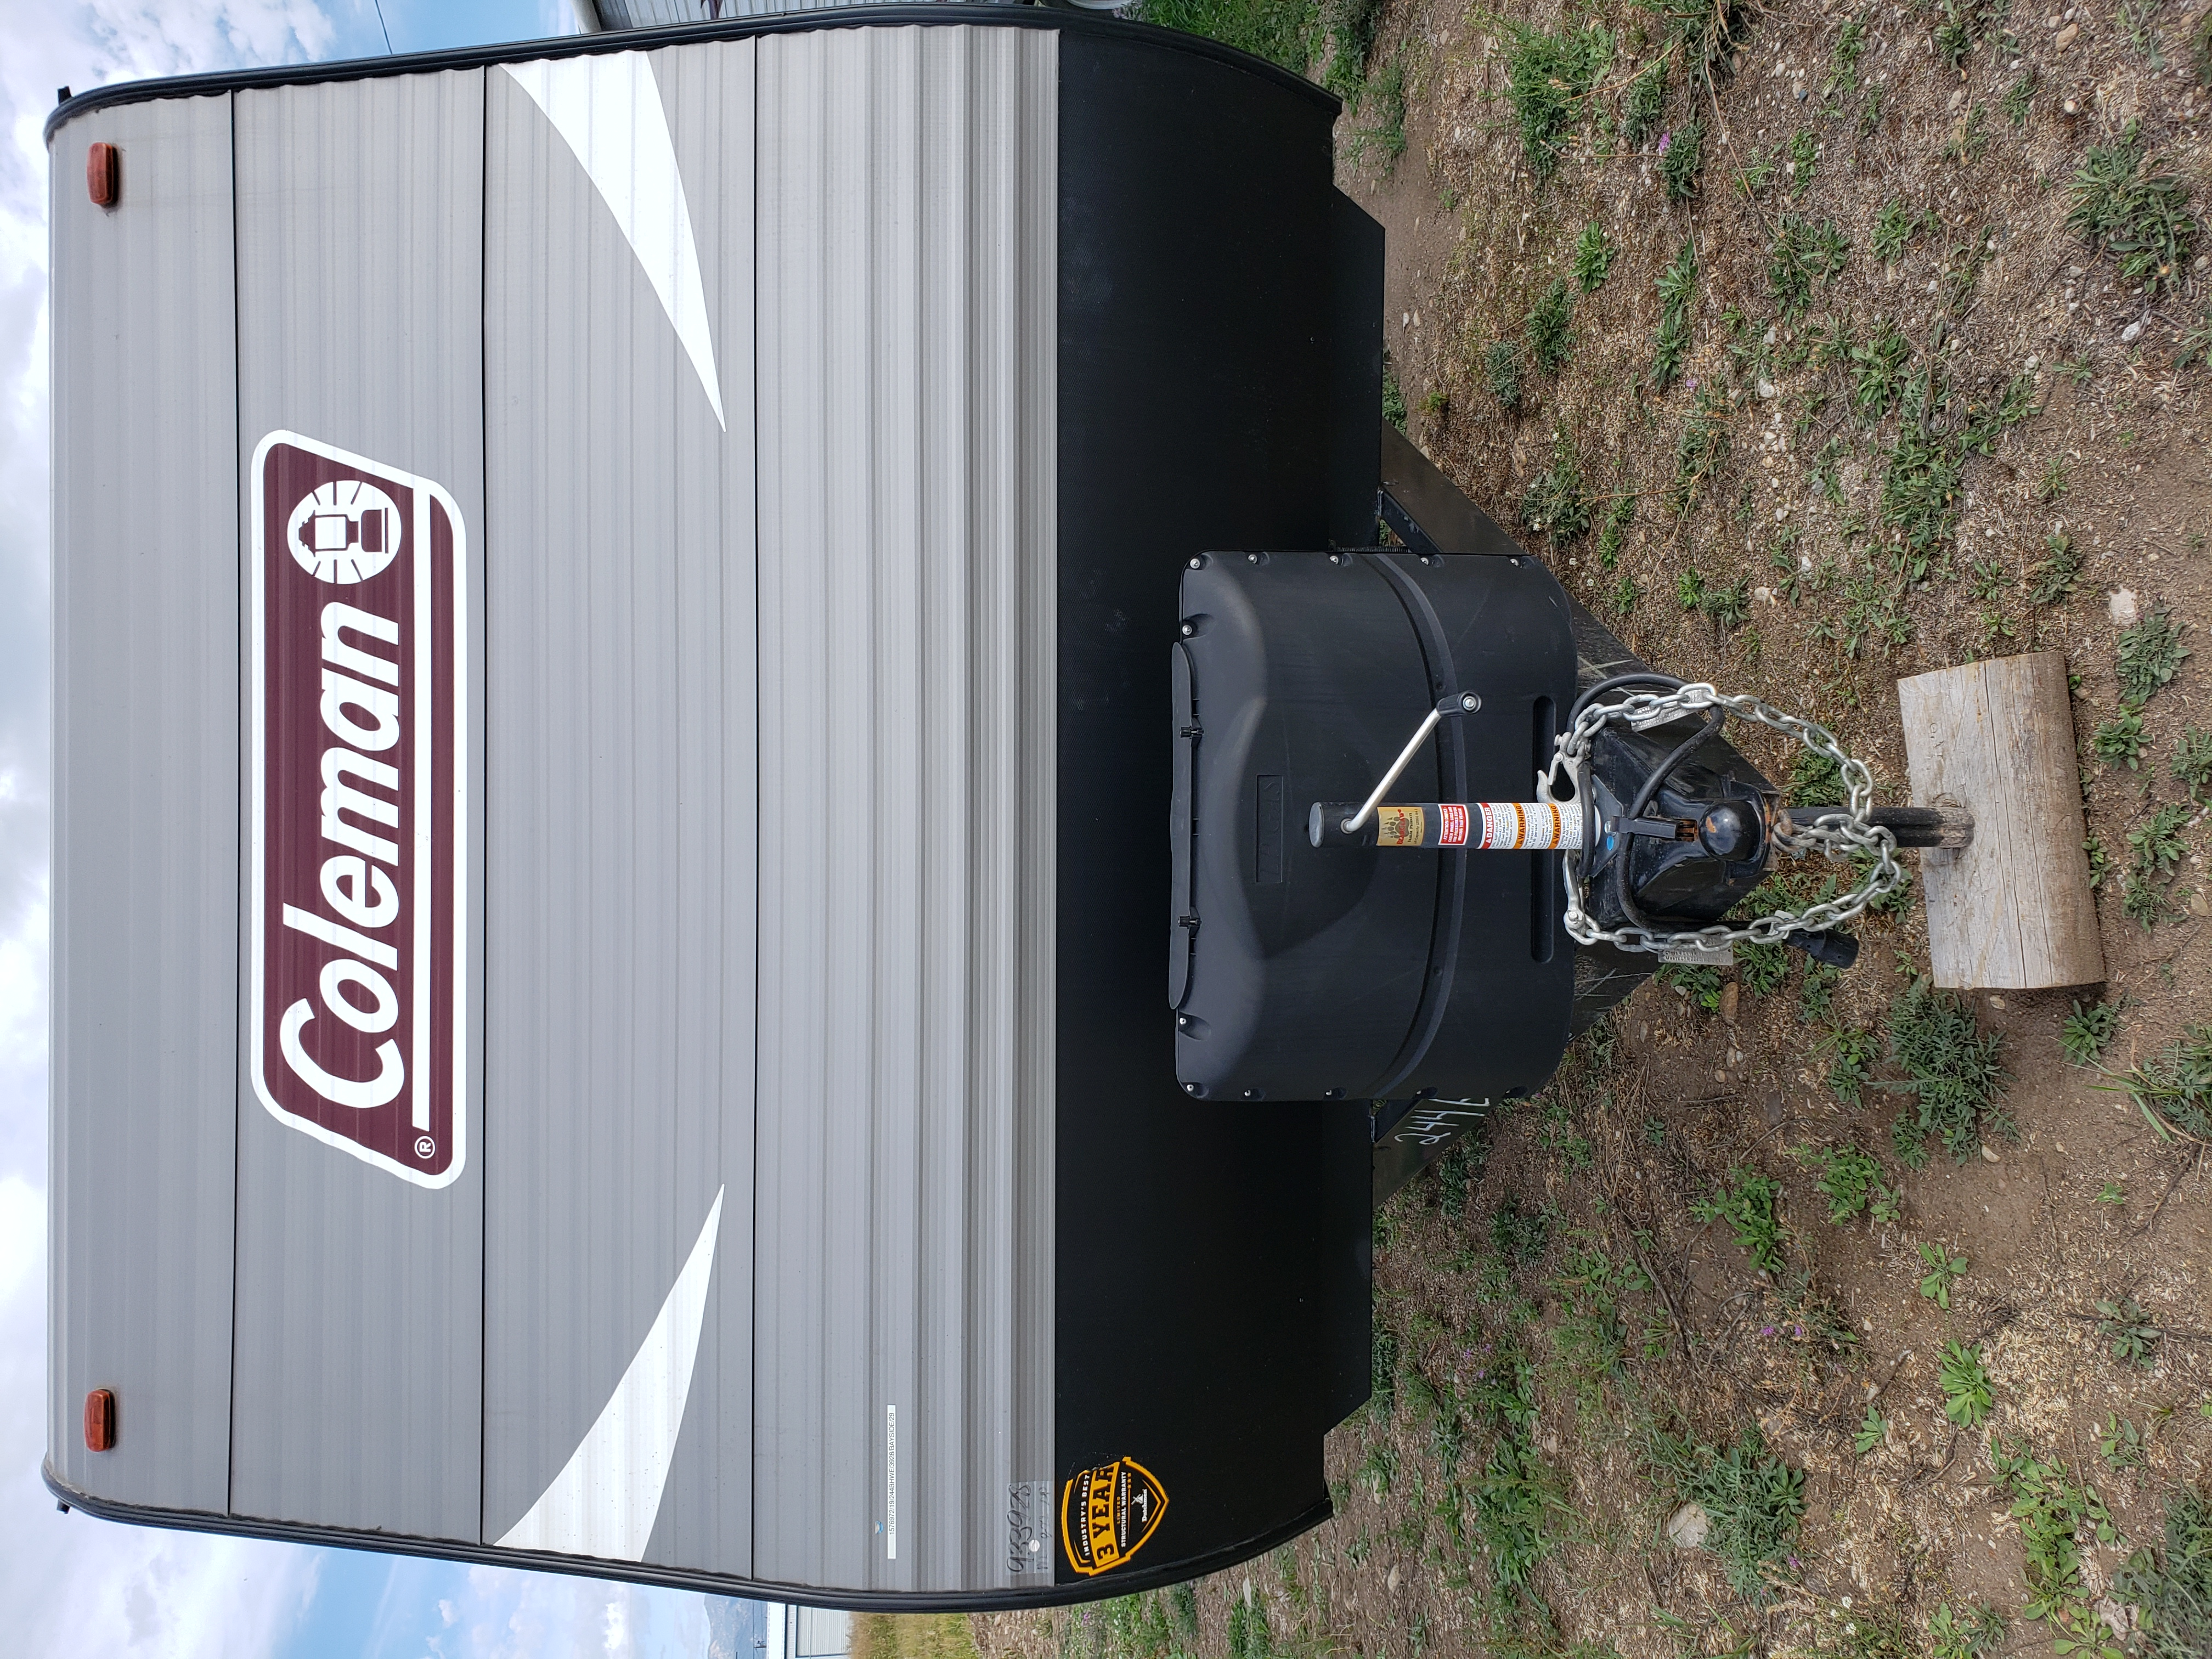 Rv has 2 propane tanks and 2 batteries. (Does NOT come with a generator but can provide one upon request). Coleman Lantern 2019